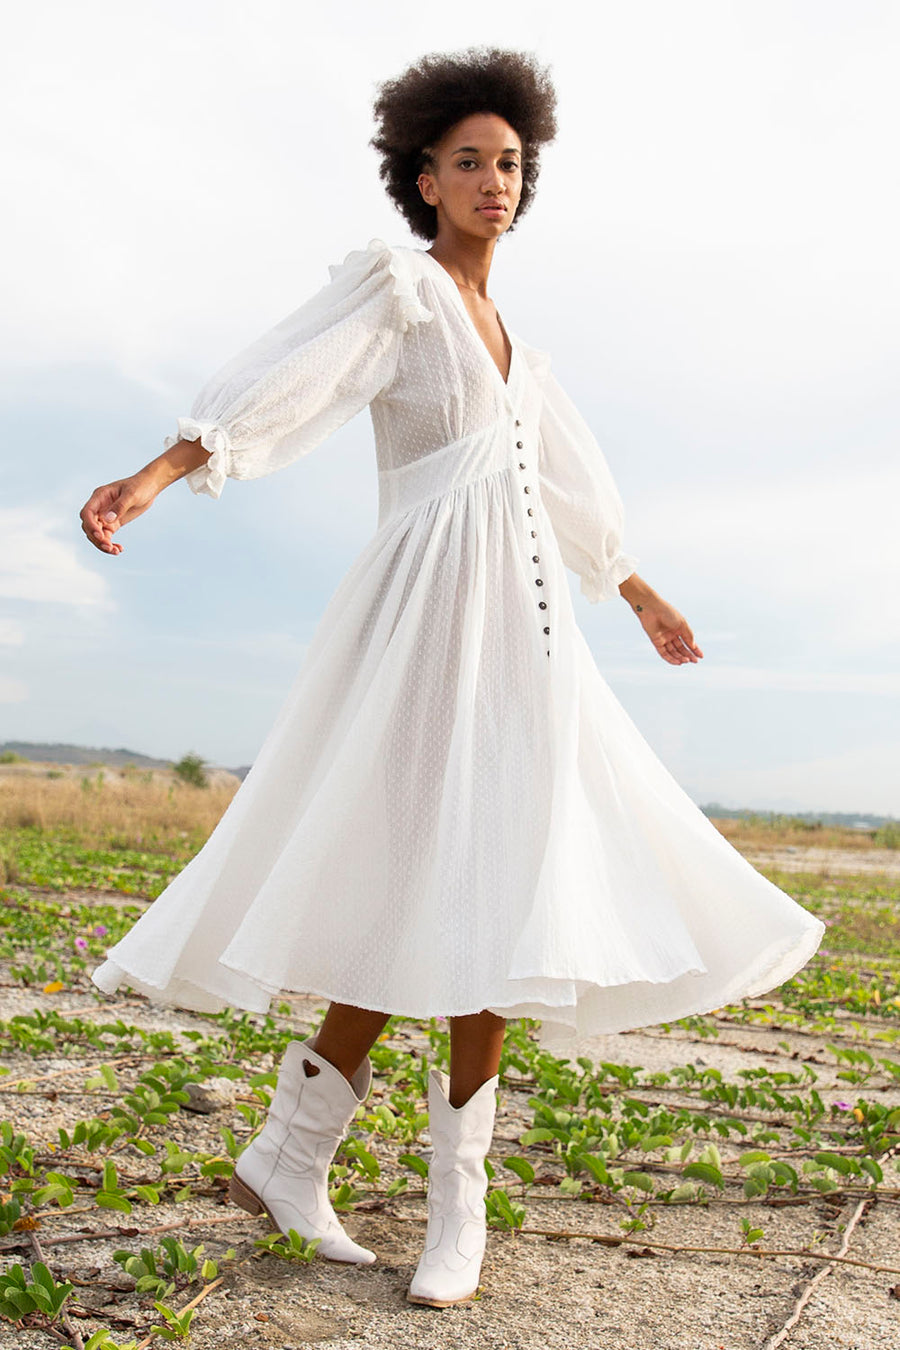 ZANTHE DOT MILKY WHITE MIDI DRESS